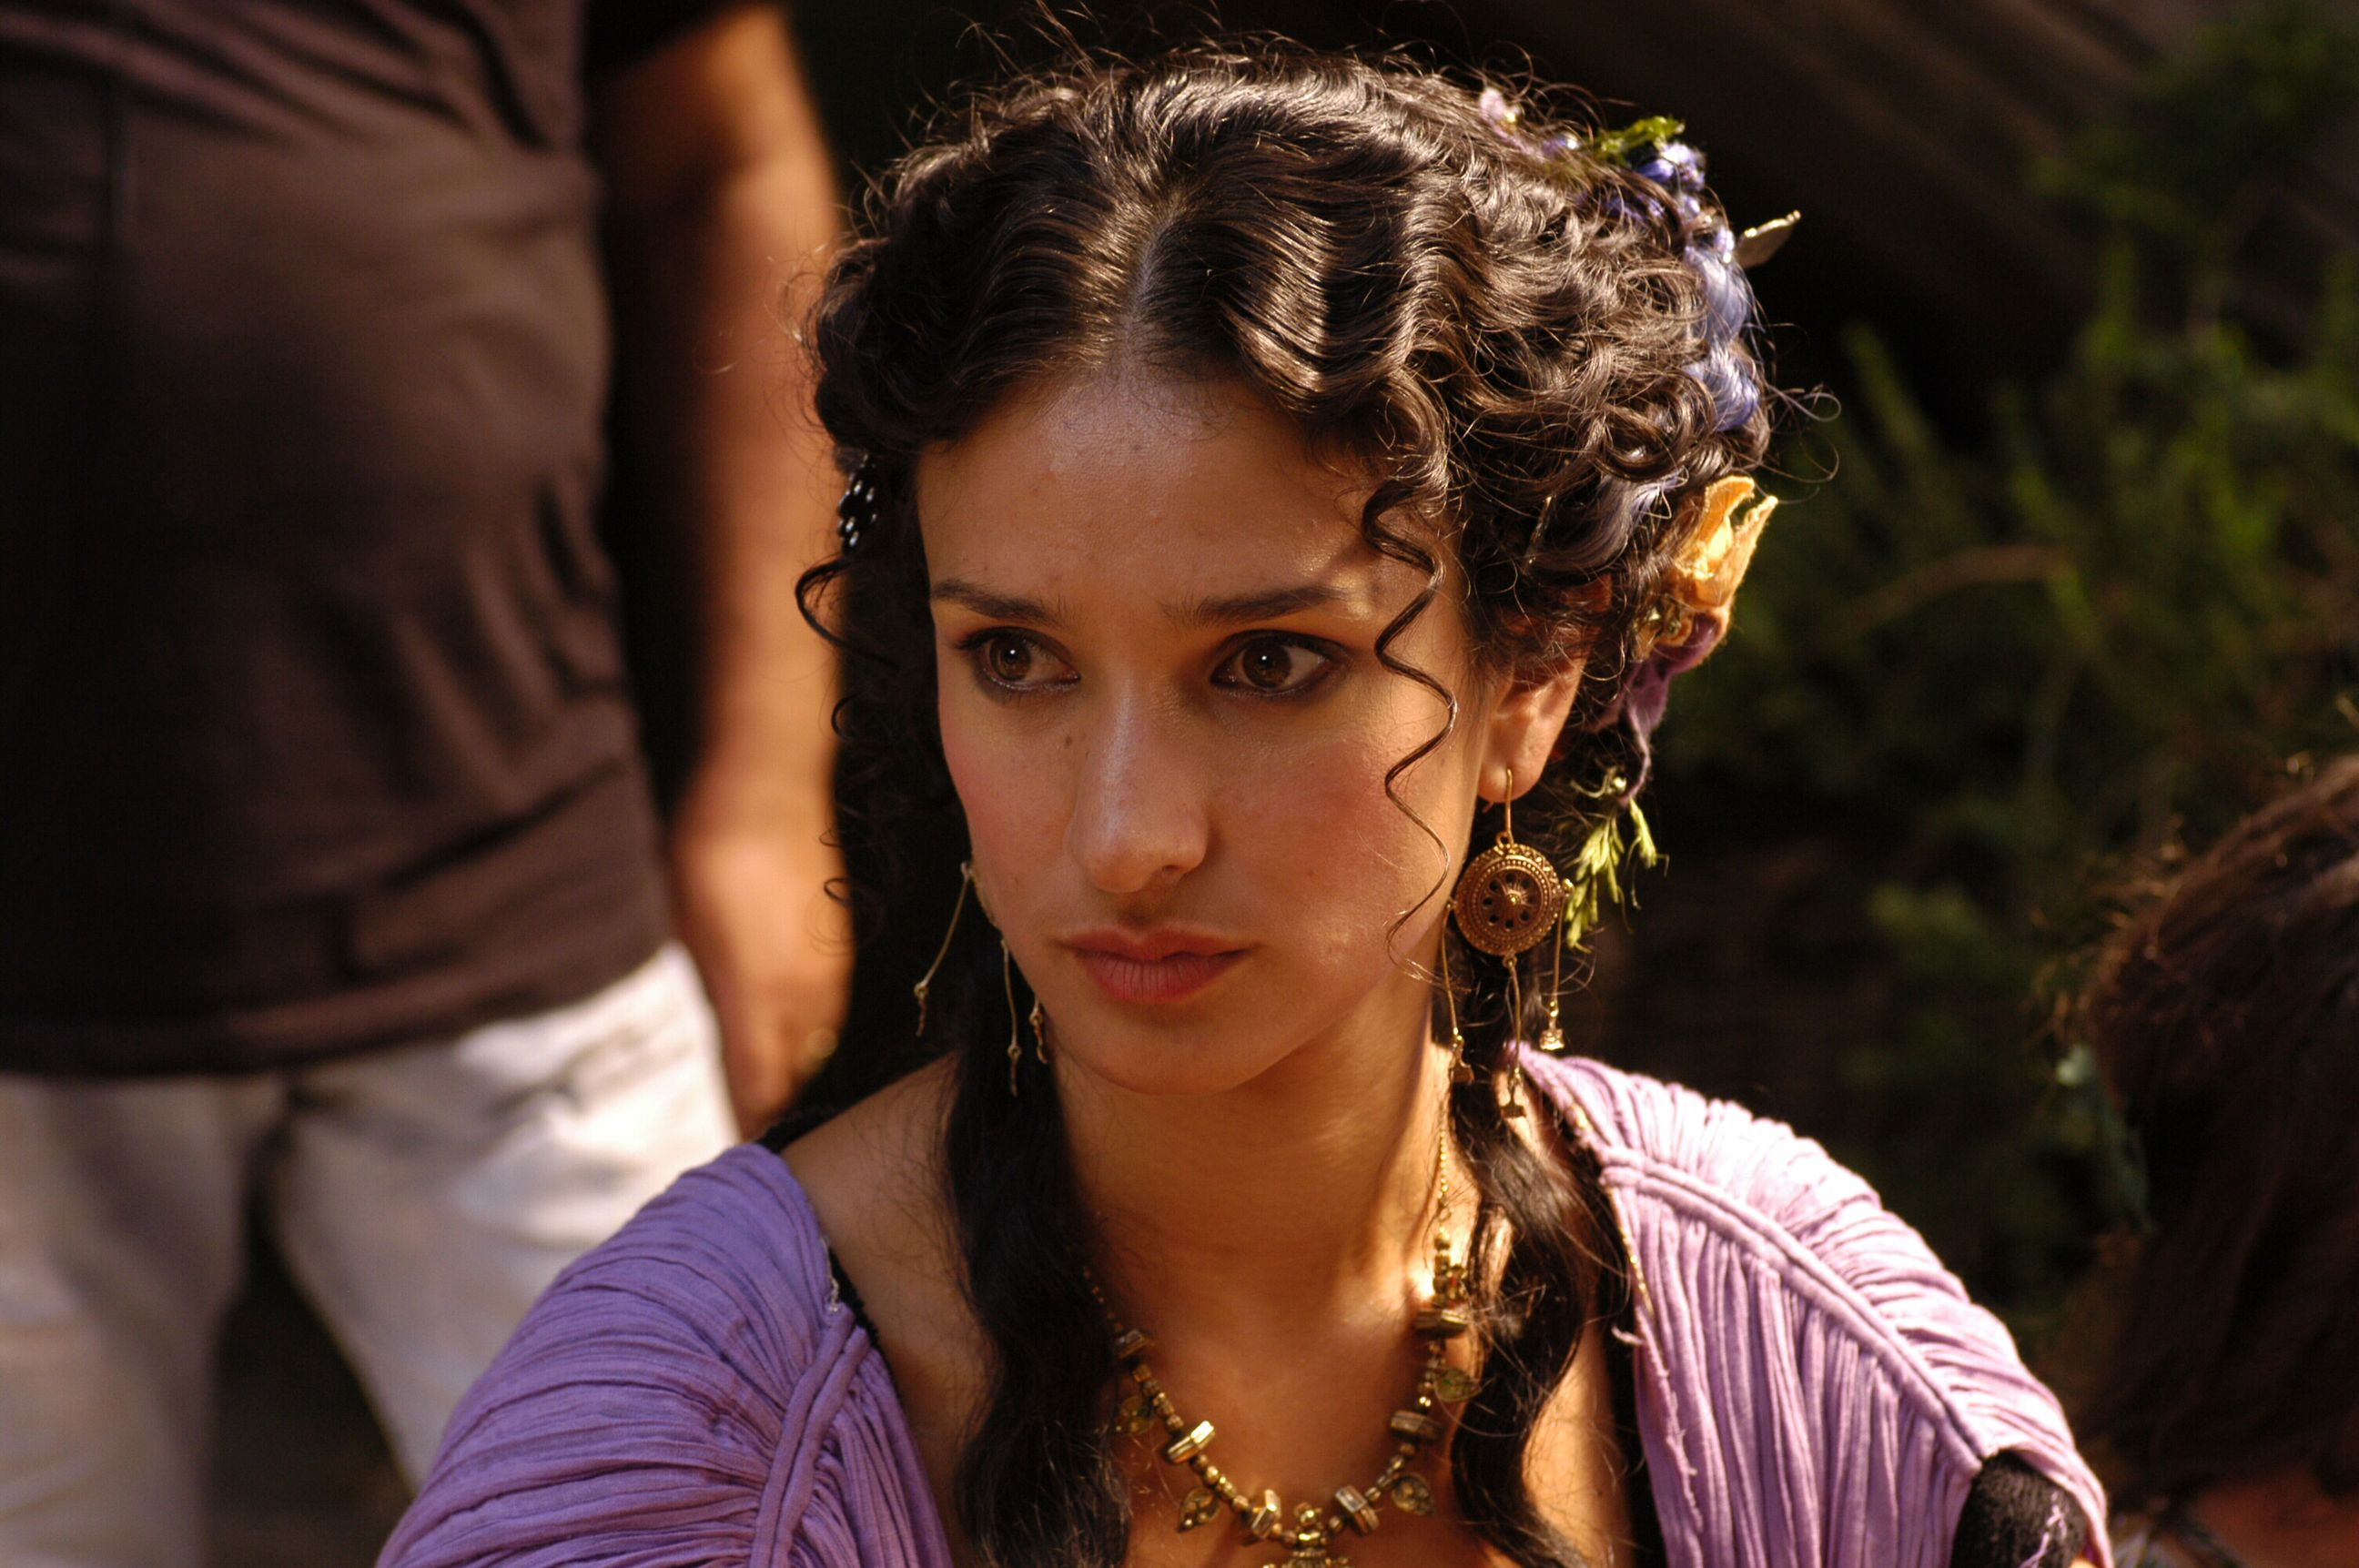 Indira Varma Widescreen for desktop